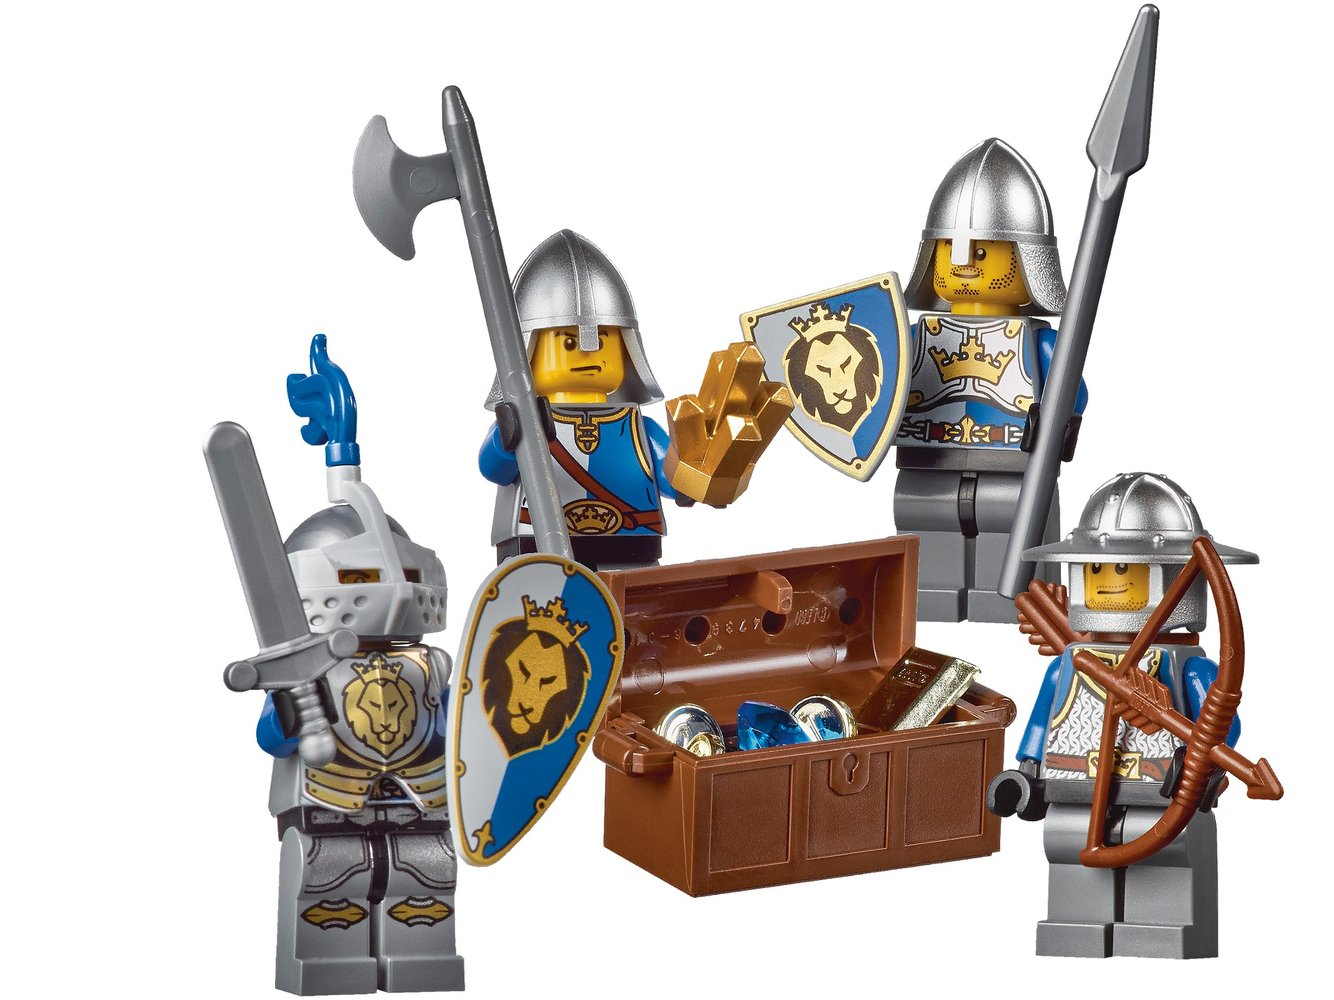 Castle Knights Accessory Set